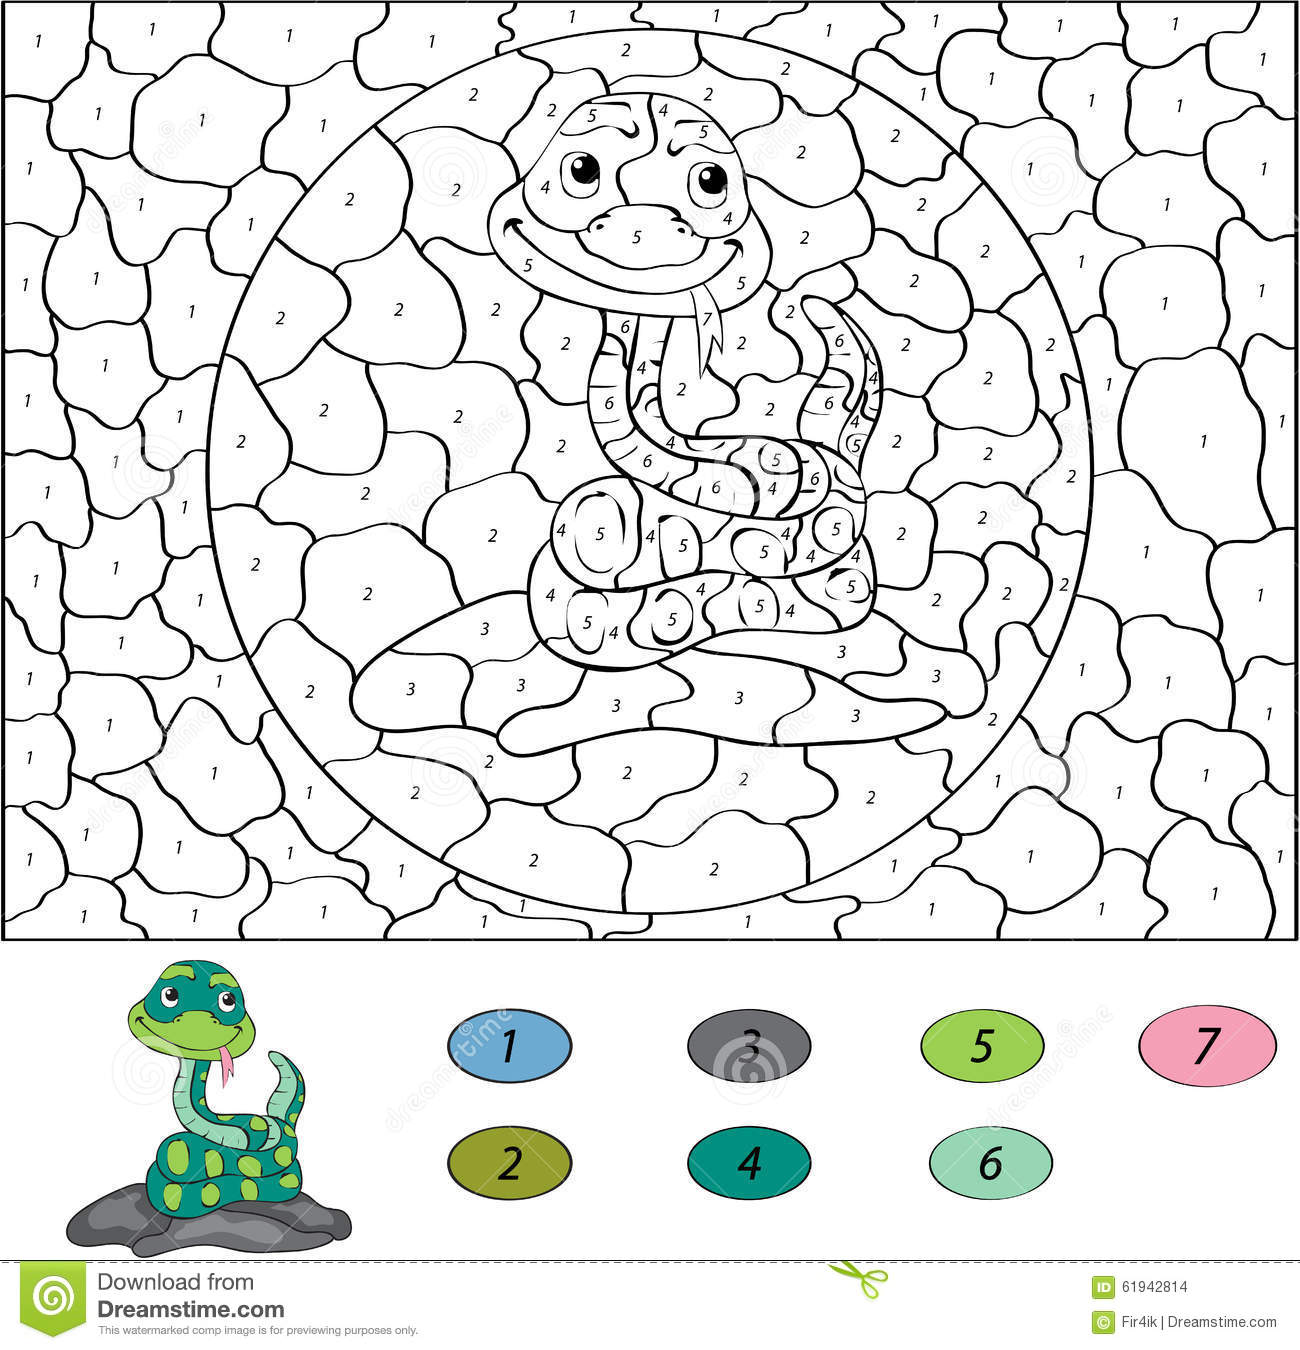 Game color by numbers - Color By Number Educational Game For Kids Funny Cartoon Snake